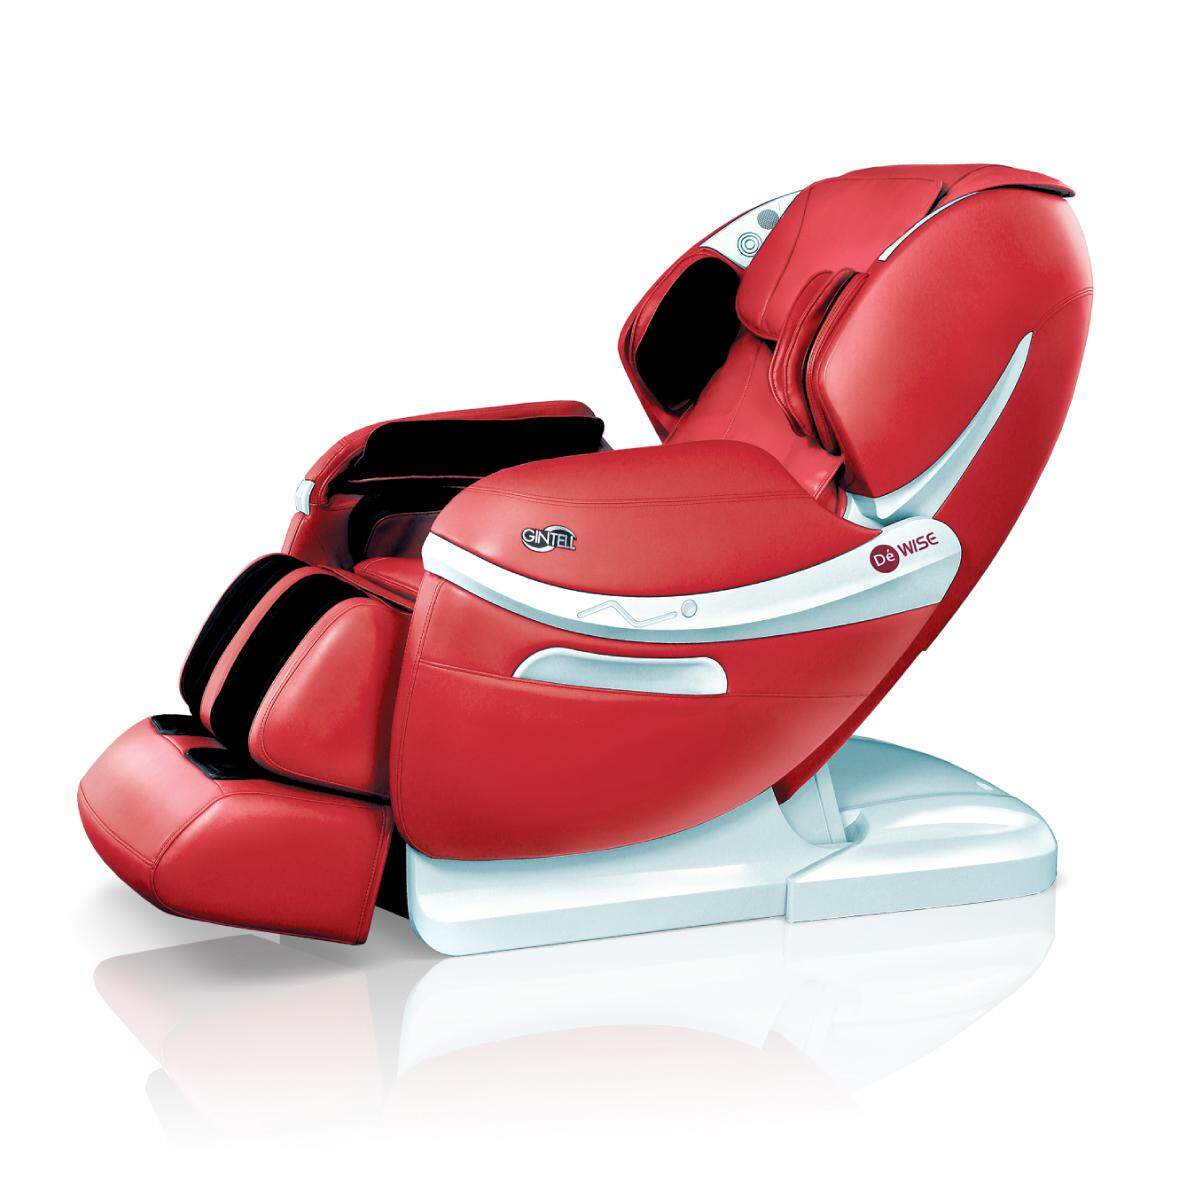 GINTELL DéWise Wisdomatic Massage Chair (Showroom Unit-Rose Red)